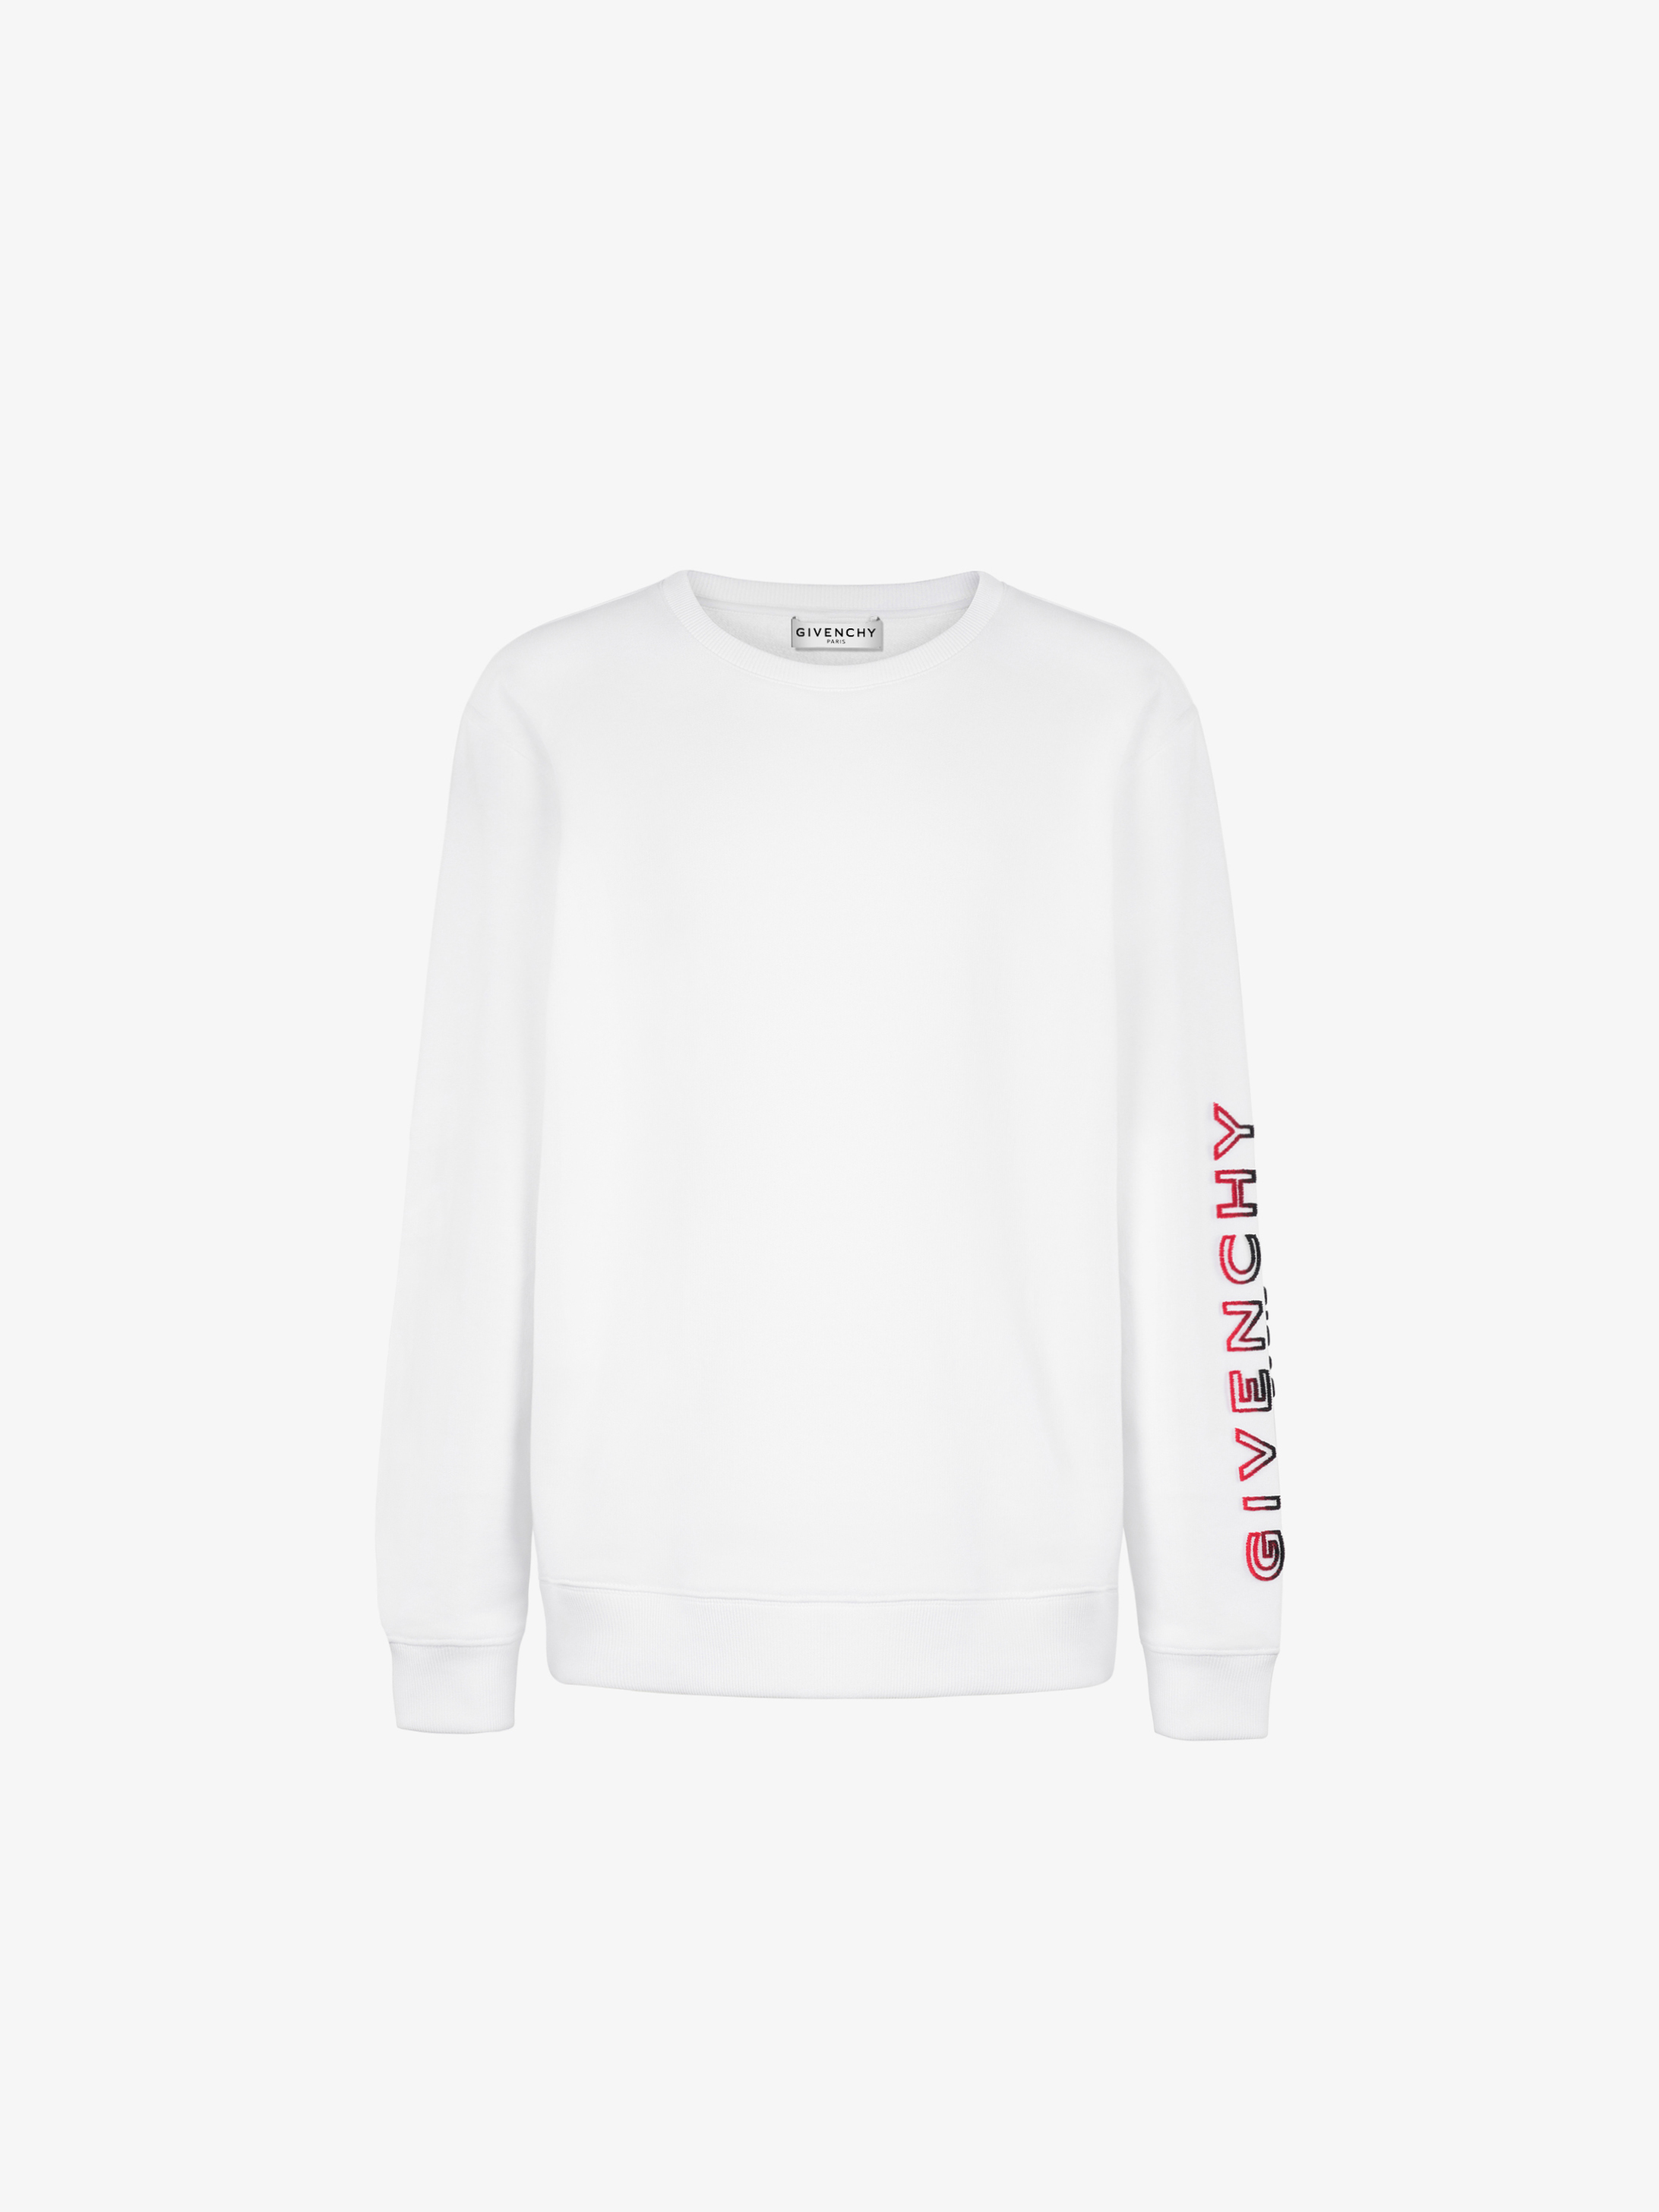 Sweatshirt GIVENCHY dégradé